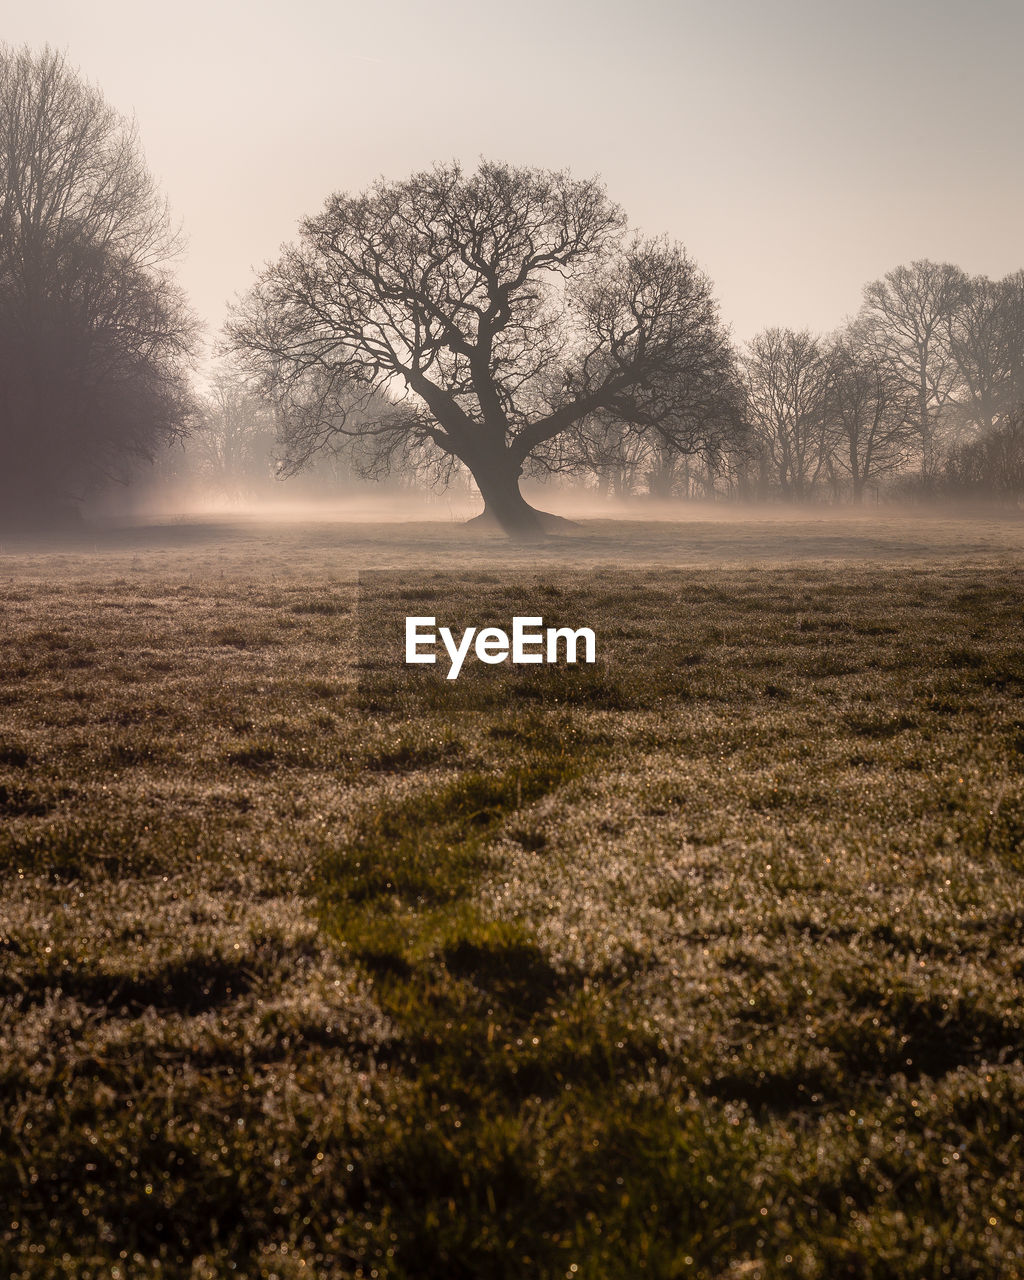 tree, plant, beauty in nature, landscape, bare tree, environment, field, tranquil scene, tranquility, sky, land, scenics - nature, non-urban scene, no people, fog, nature, remote, solitude, growth, outdoors, isolated, hazy